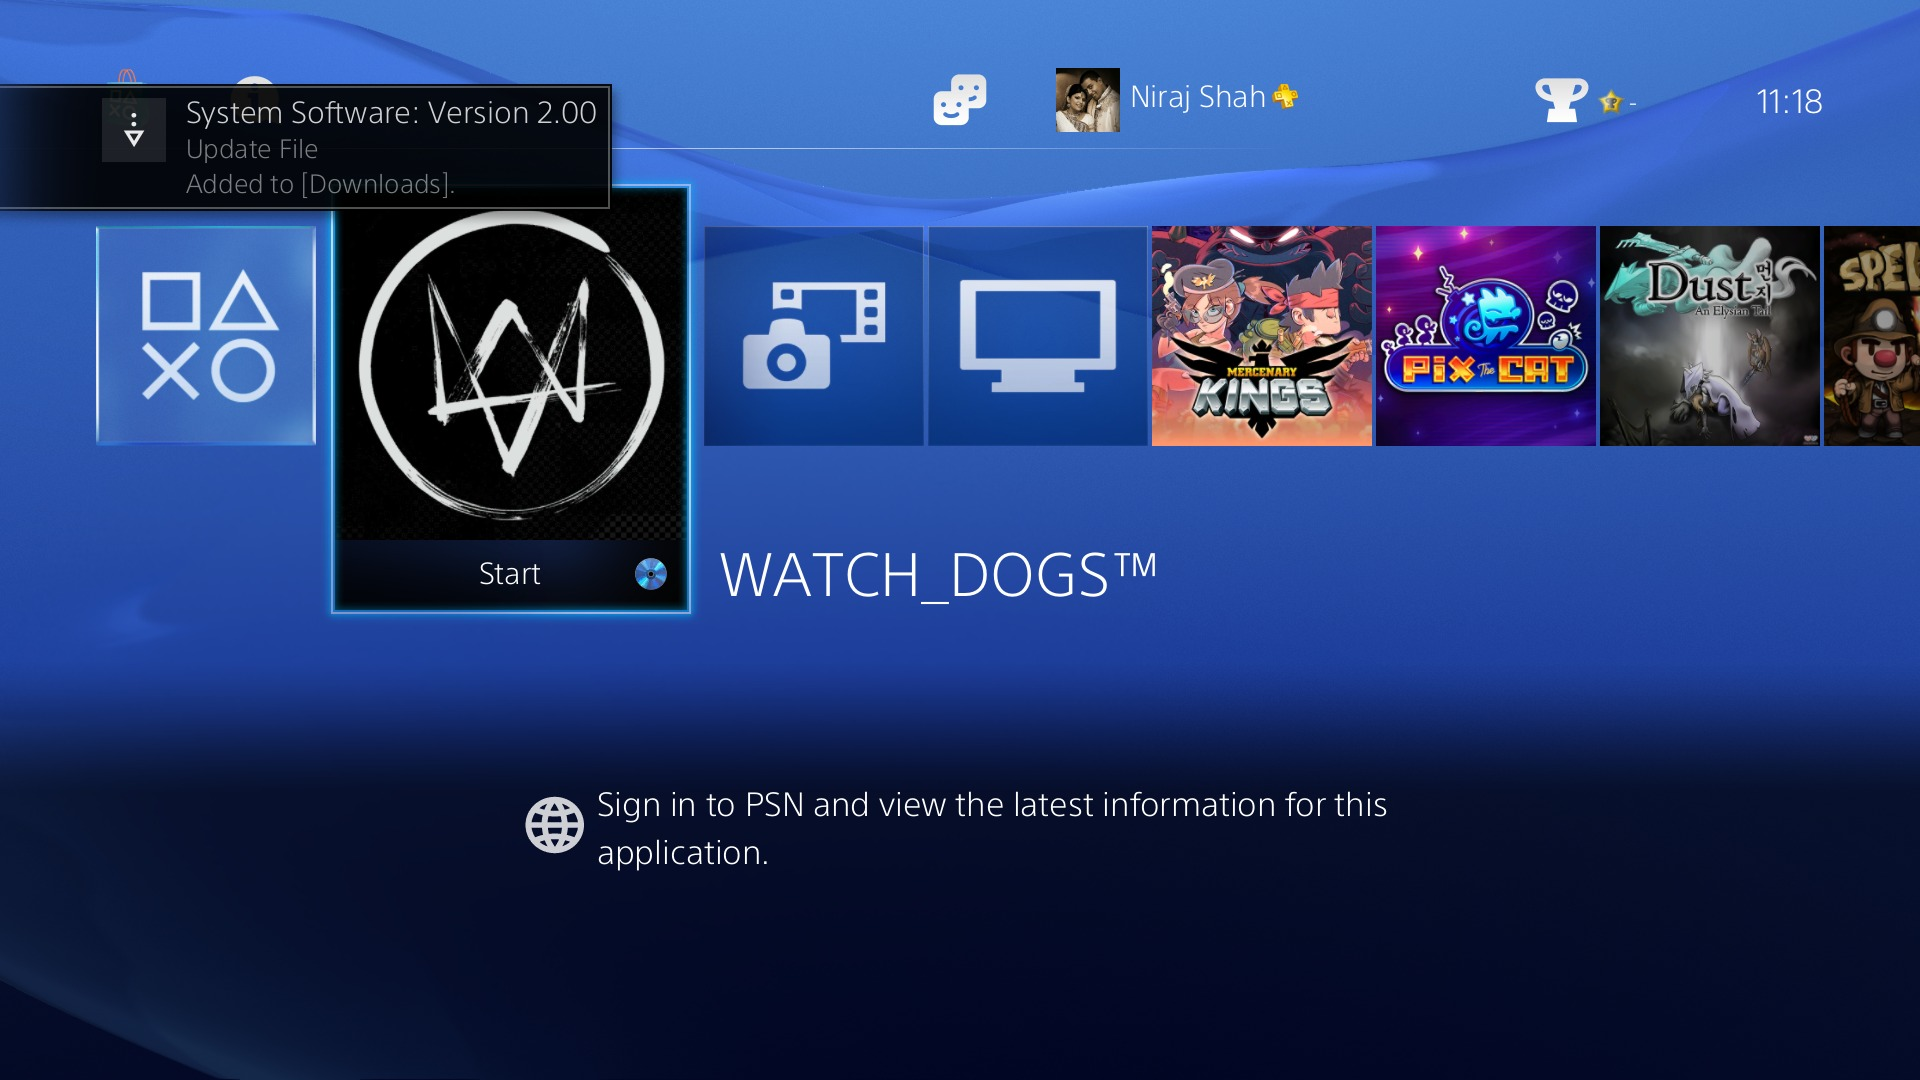 How to put music from usb to ps4